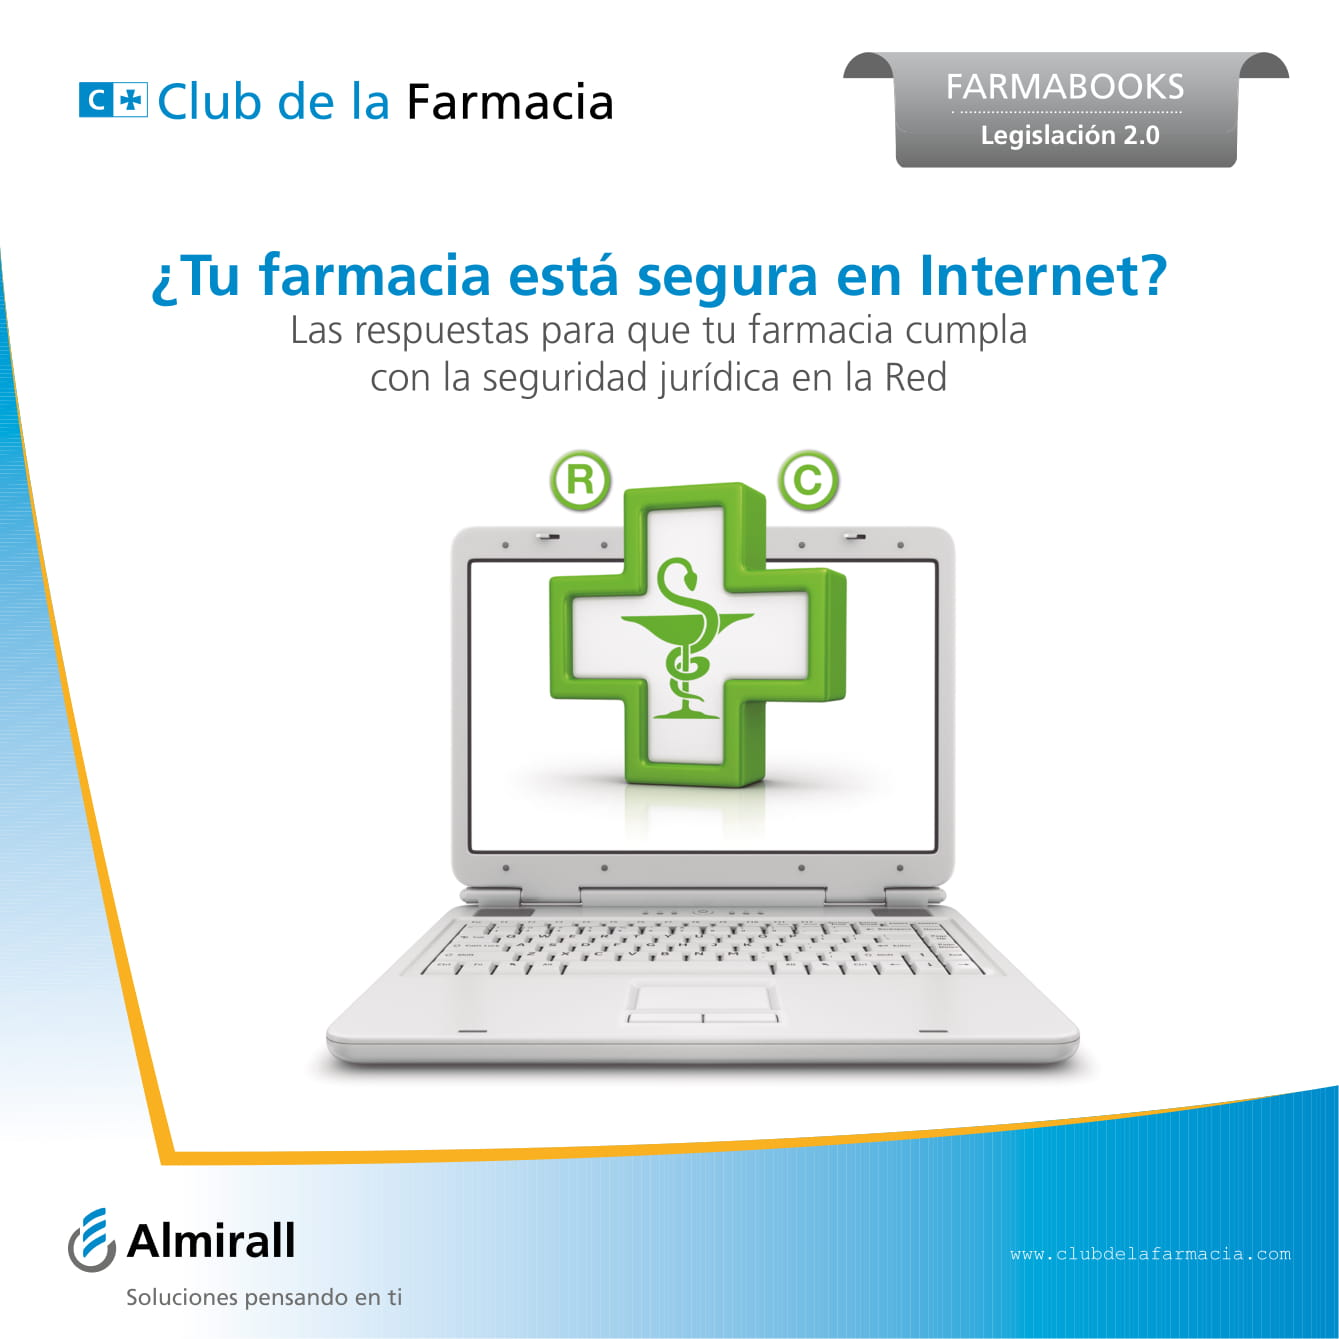 Ebooks-Club de la Farmacia-35.jpg